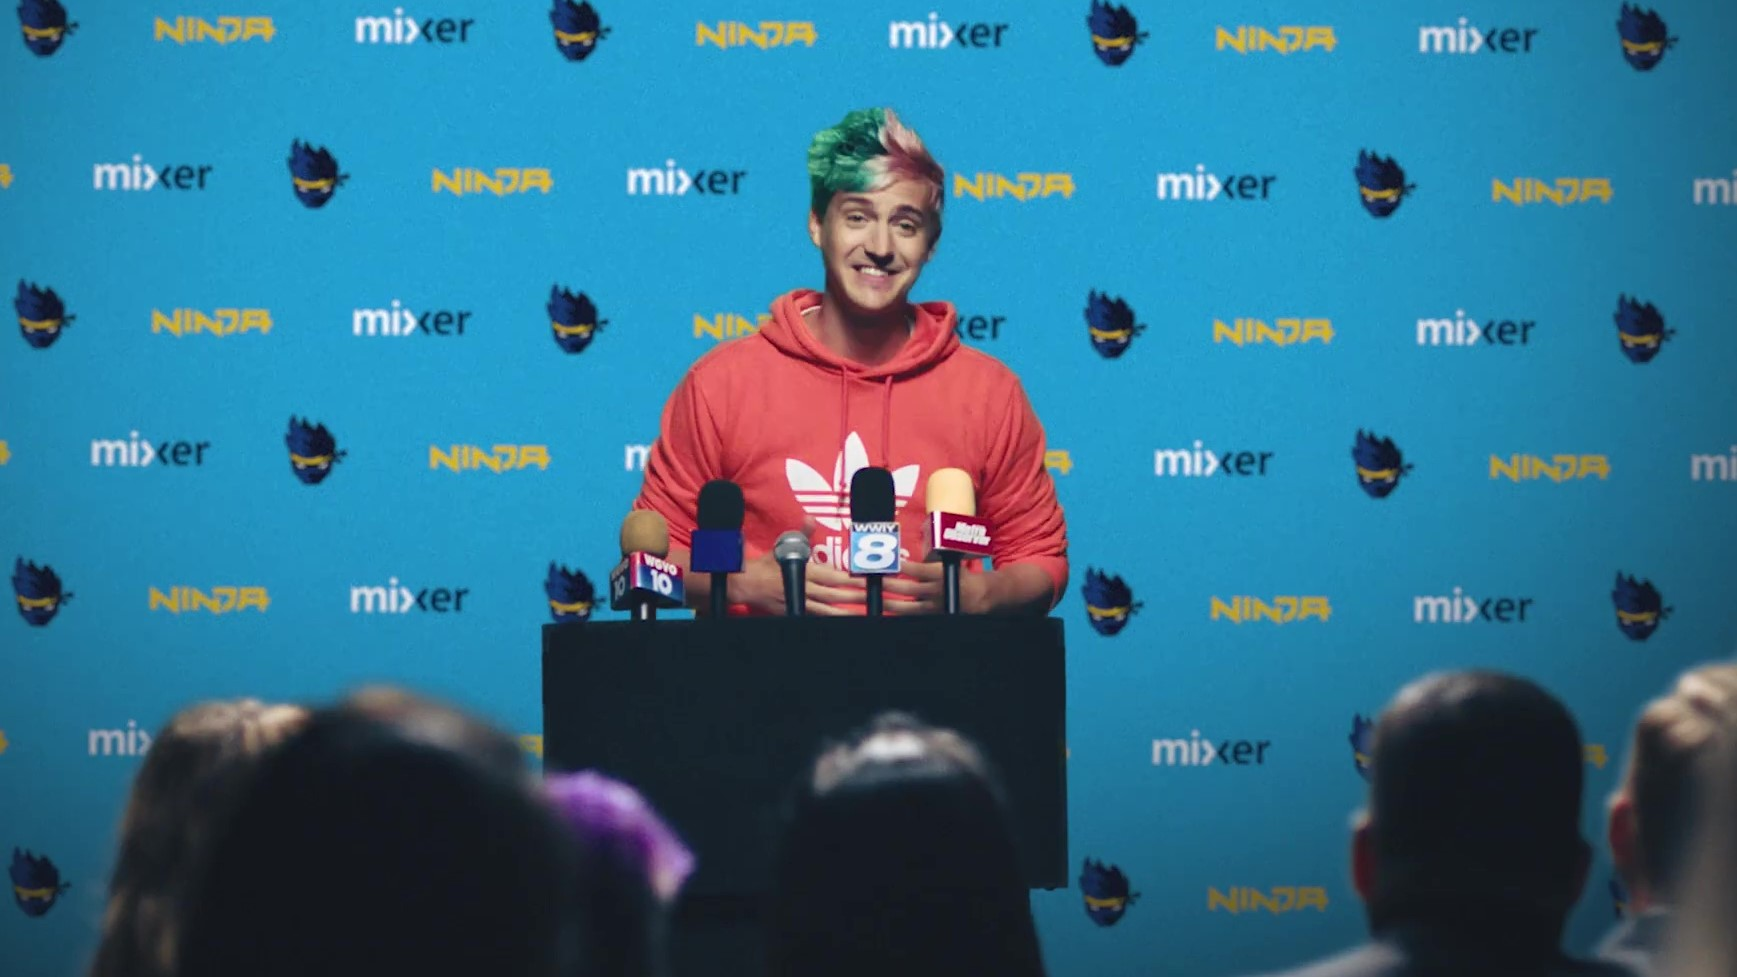 Ninja Gets 1 million subs on Mixer within a week | Pakistan